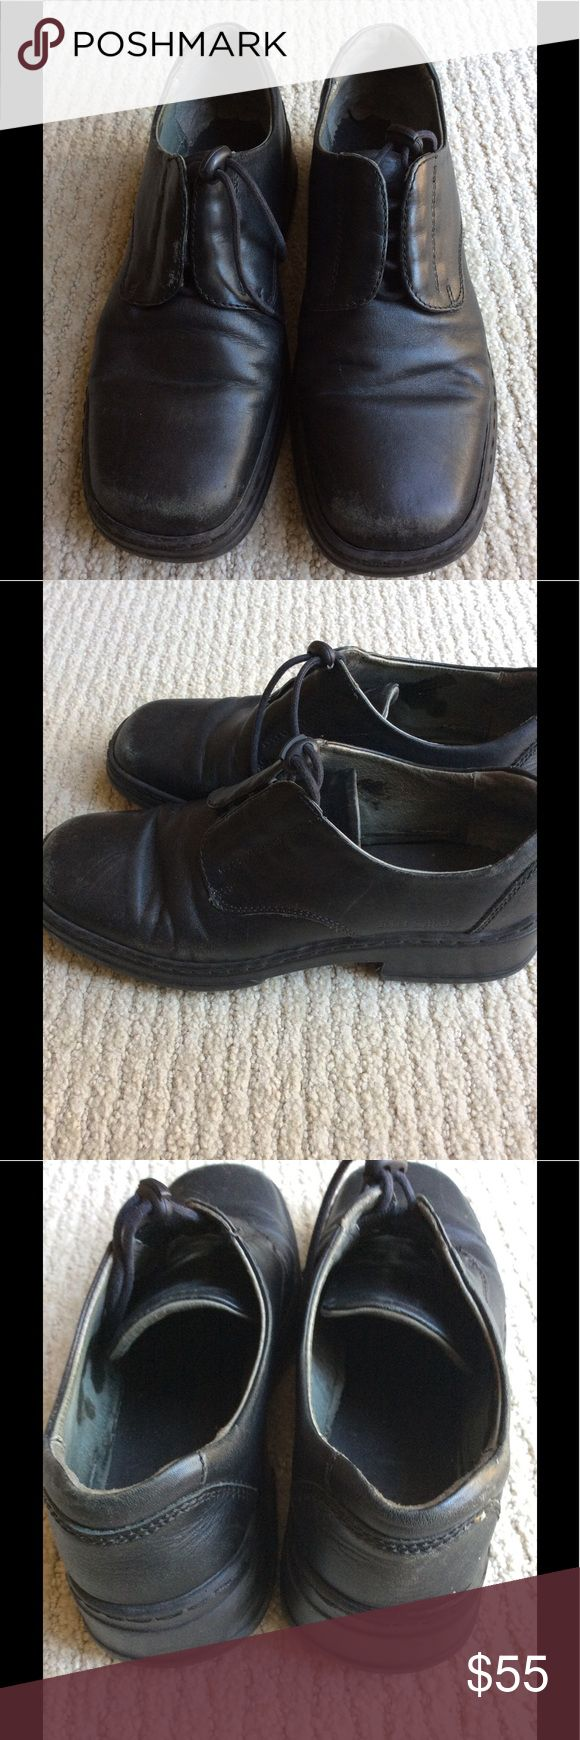 Joseph Siebel women's shoes Gently used shoes very good condition excellent quality Josef Seibel Shoes